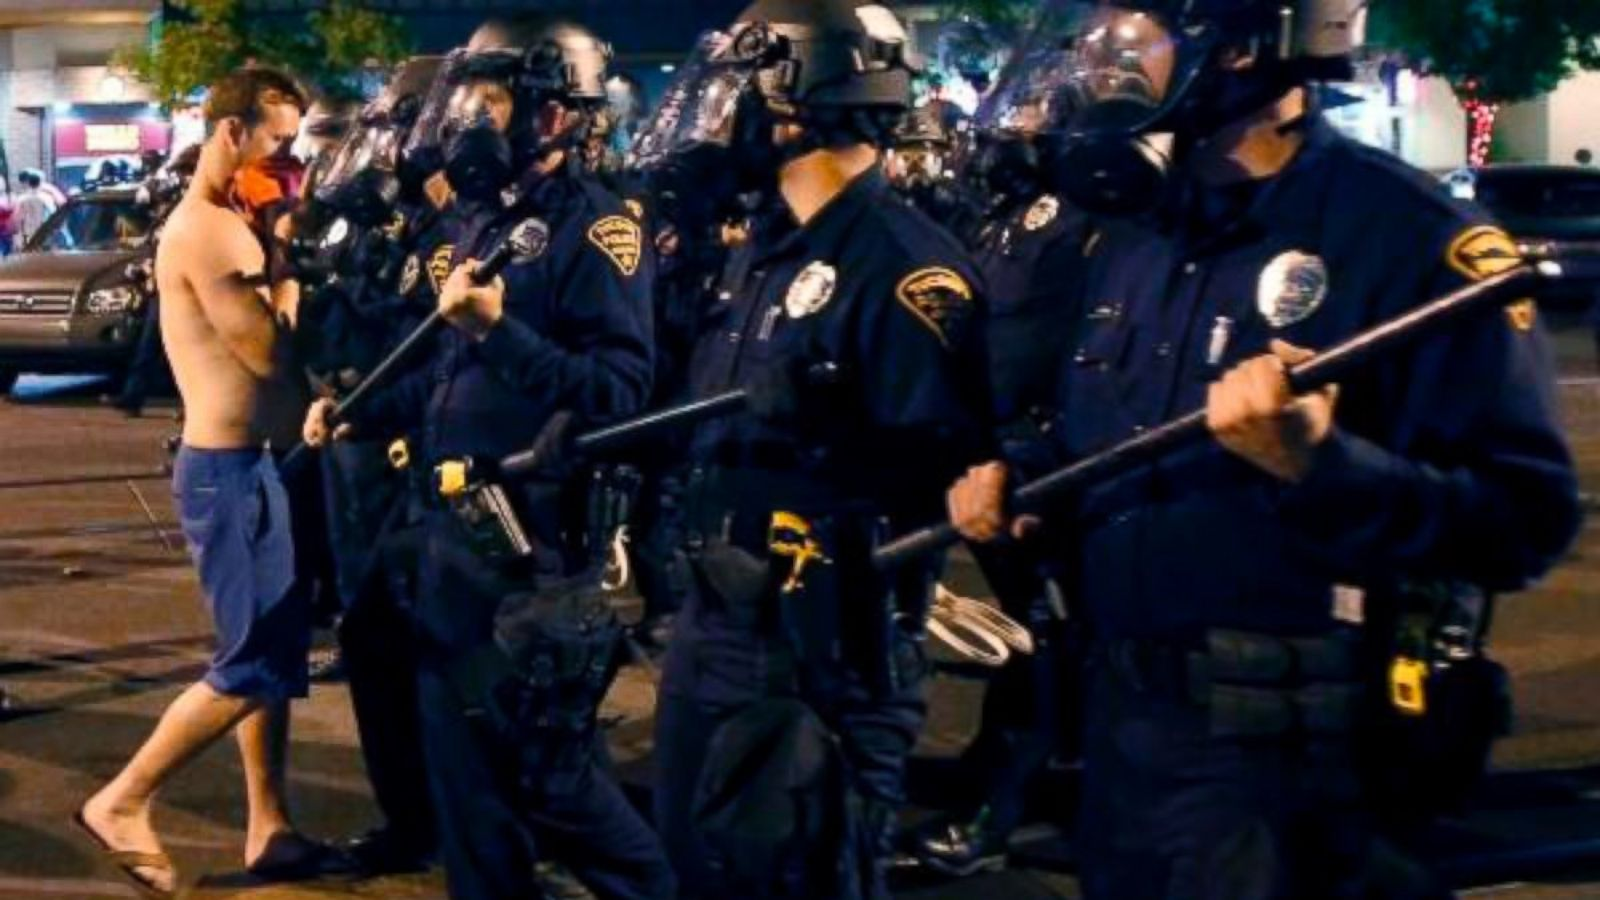 PHOTO: One man confronts the line of advancing Tucson Police.